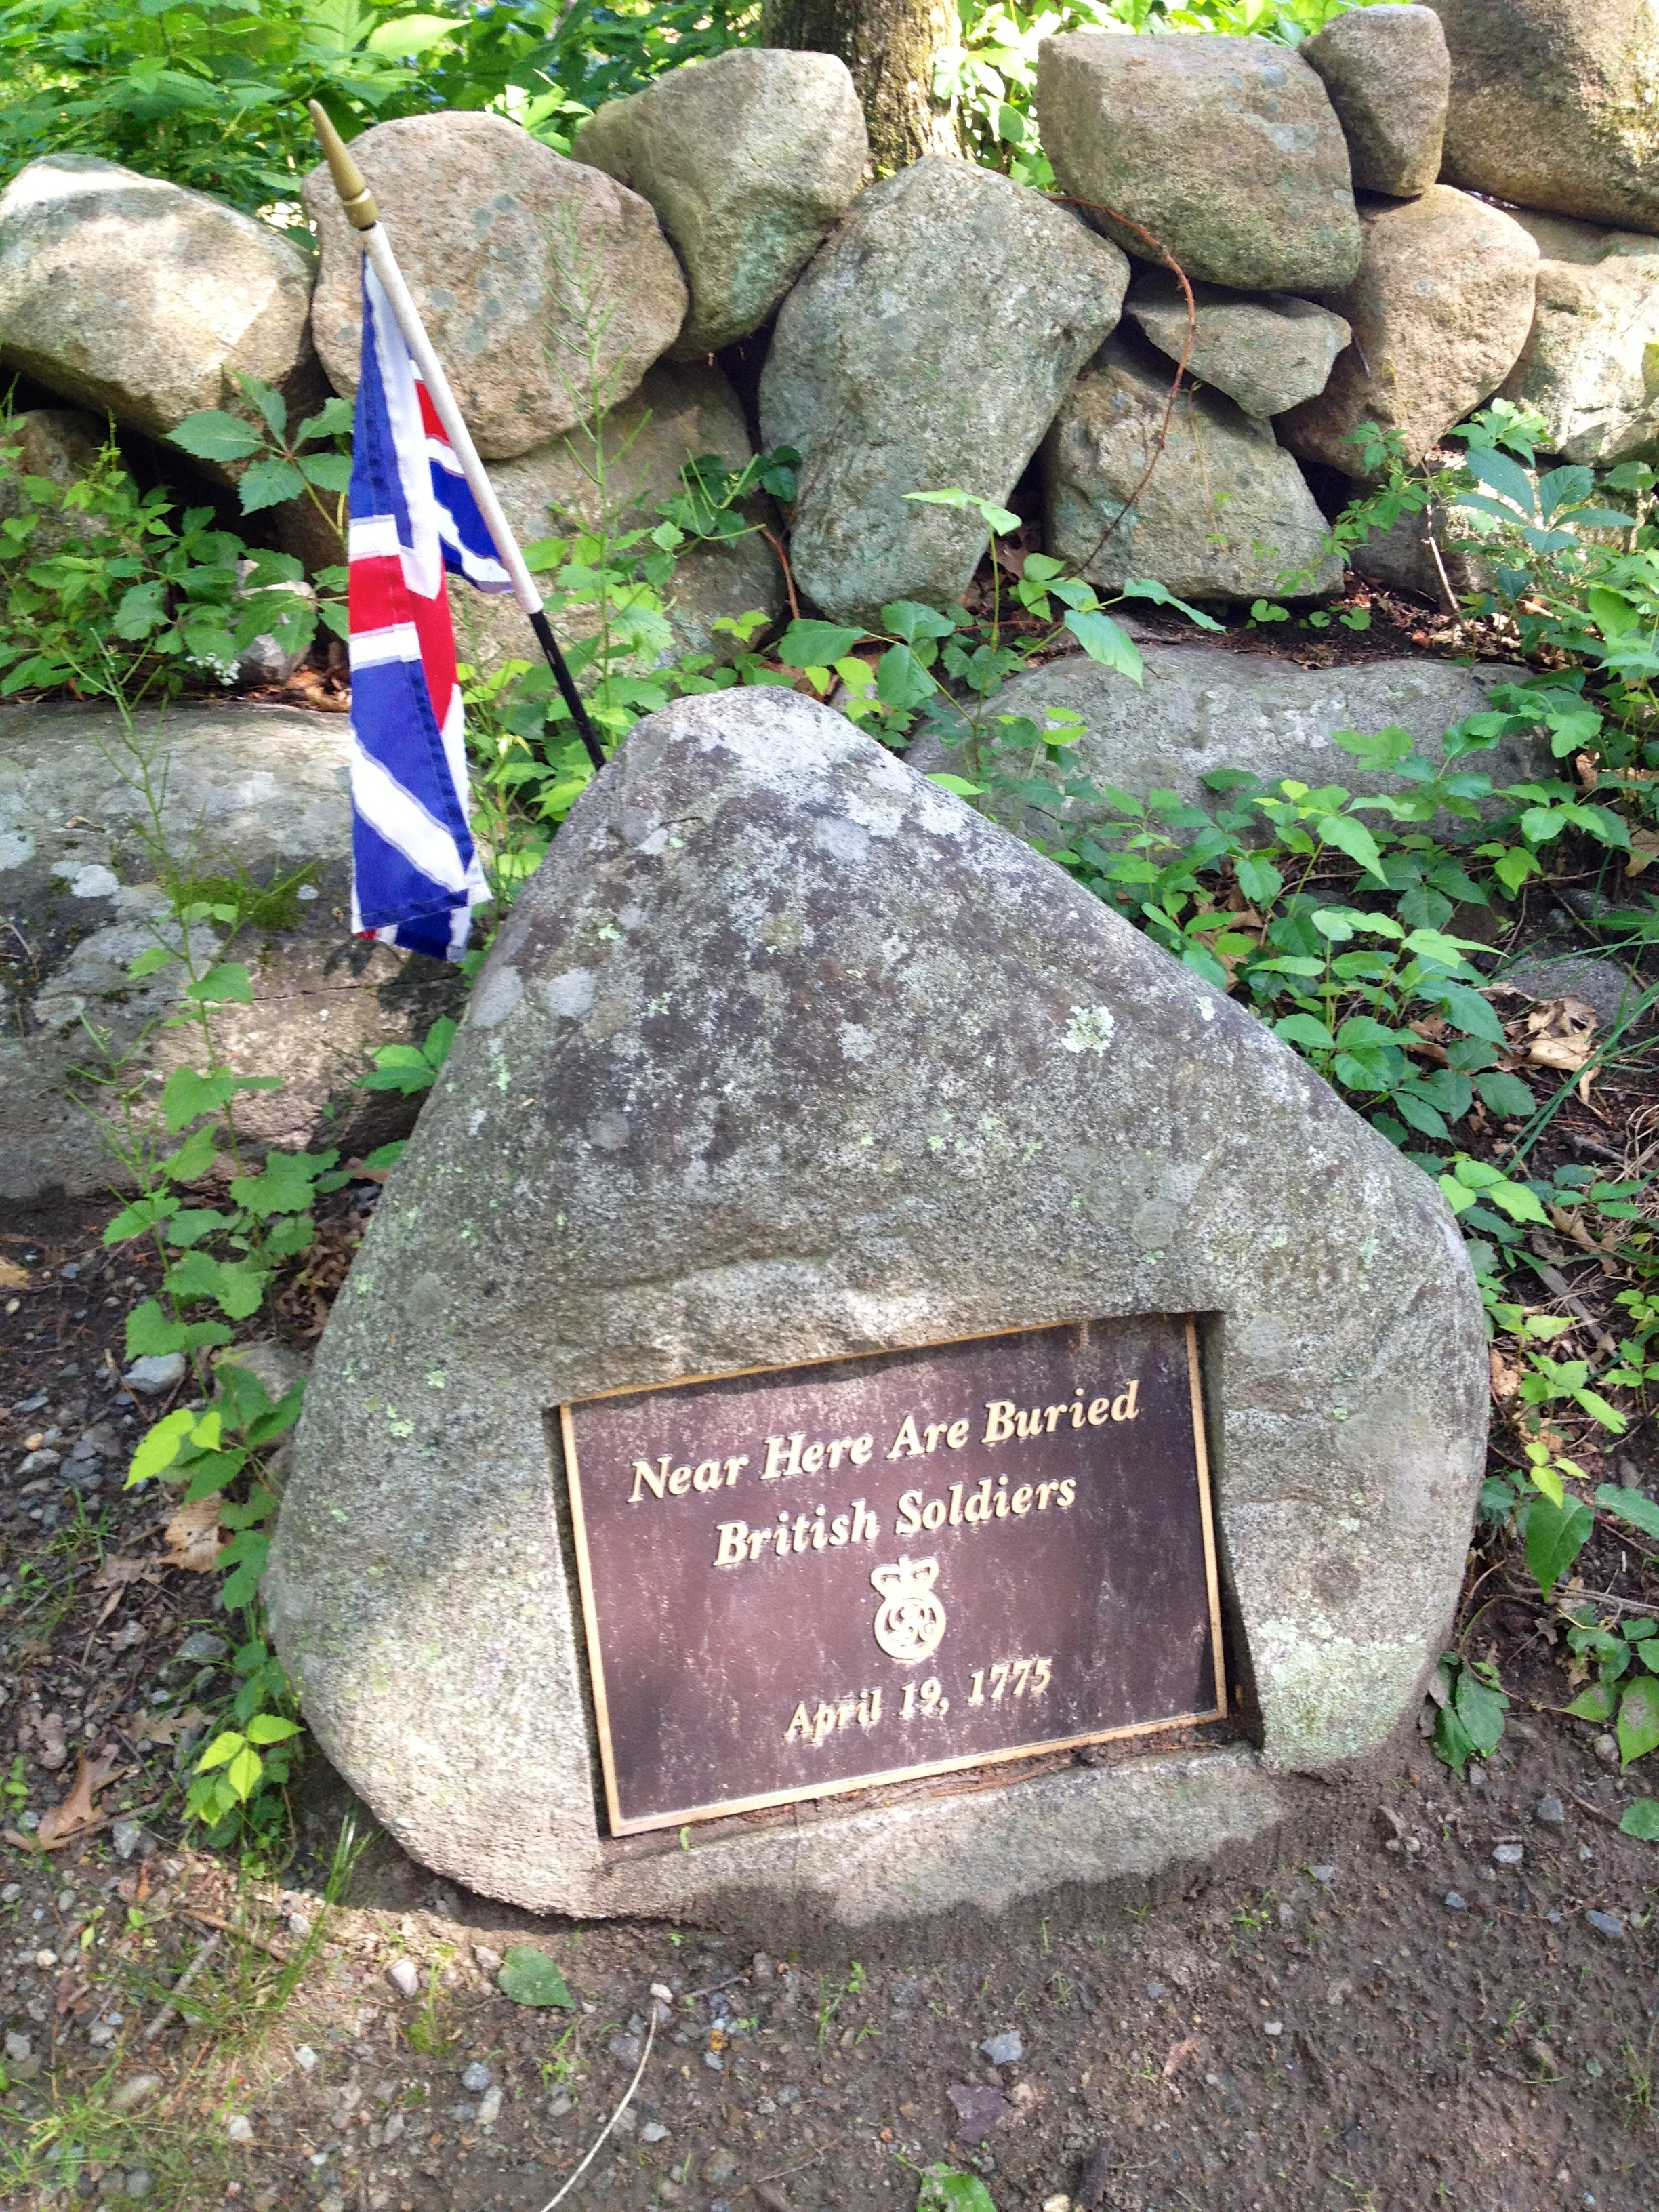 Grave marker of British Soldiers along Battle Road in Lexington, marking the burial sites of British soldiers that died during the Battle of Lexington and Concord, April 19, 1775. The markers are maintained with Britain's 1775 version of the Union Flag. Photo taken on June 7, 2012.